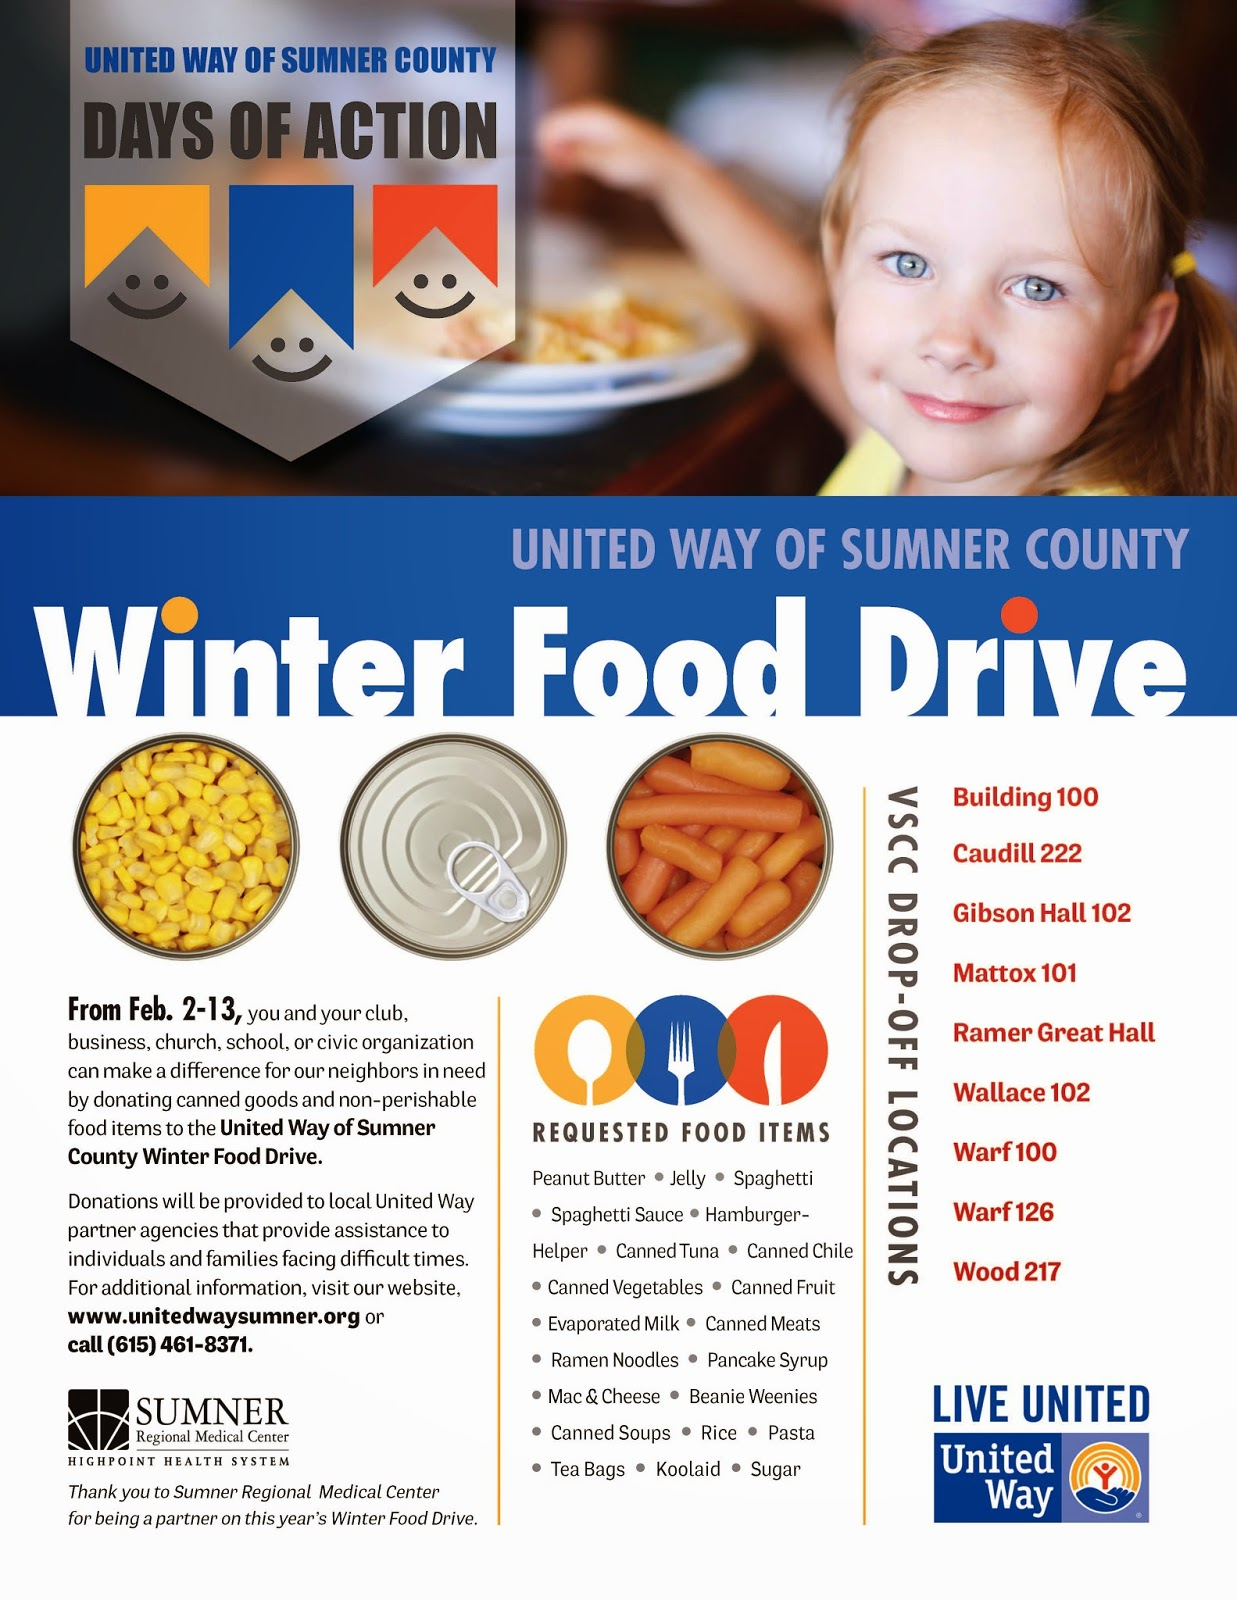 State virtual community you can help united way winter food drive